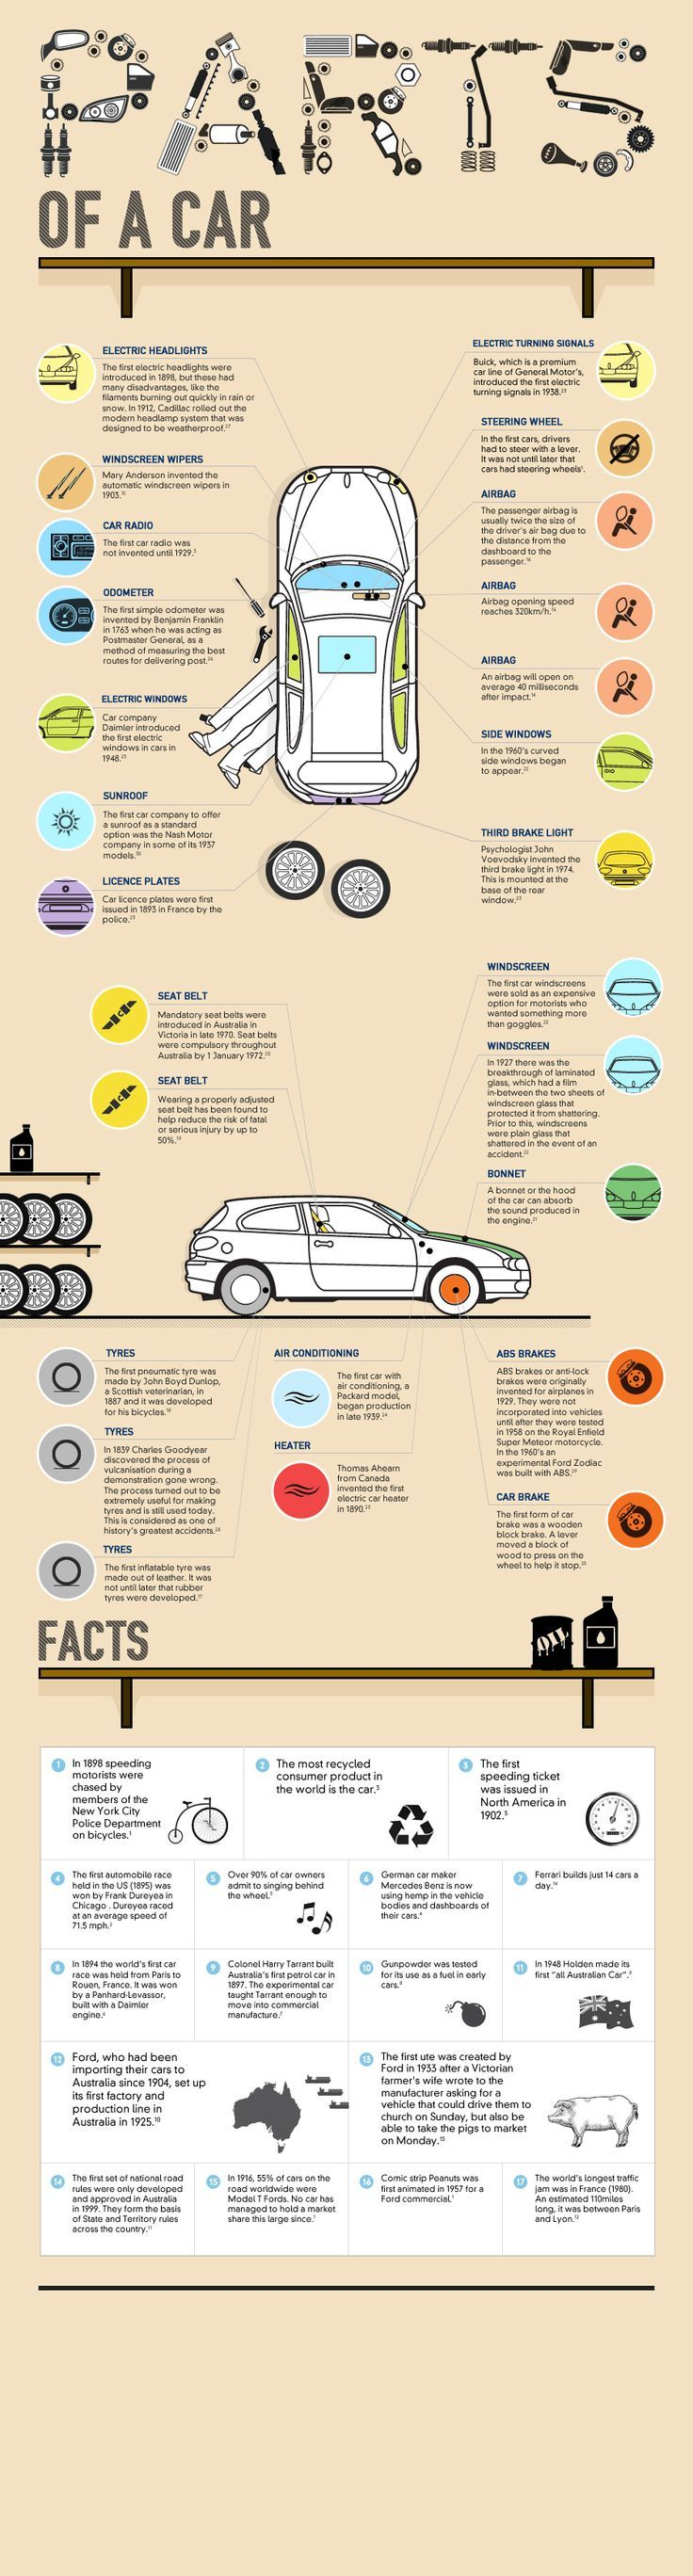 Do you know what makes your car run?  Try quizzing yourself